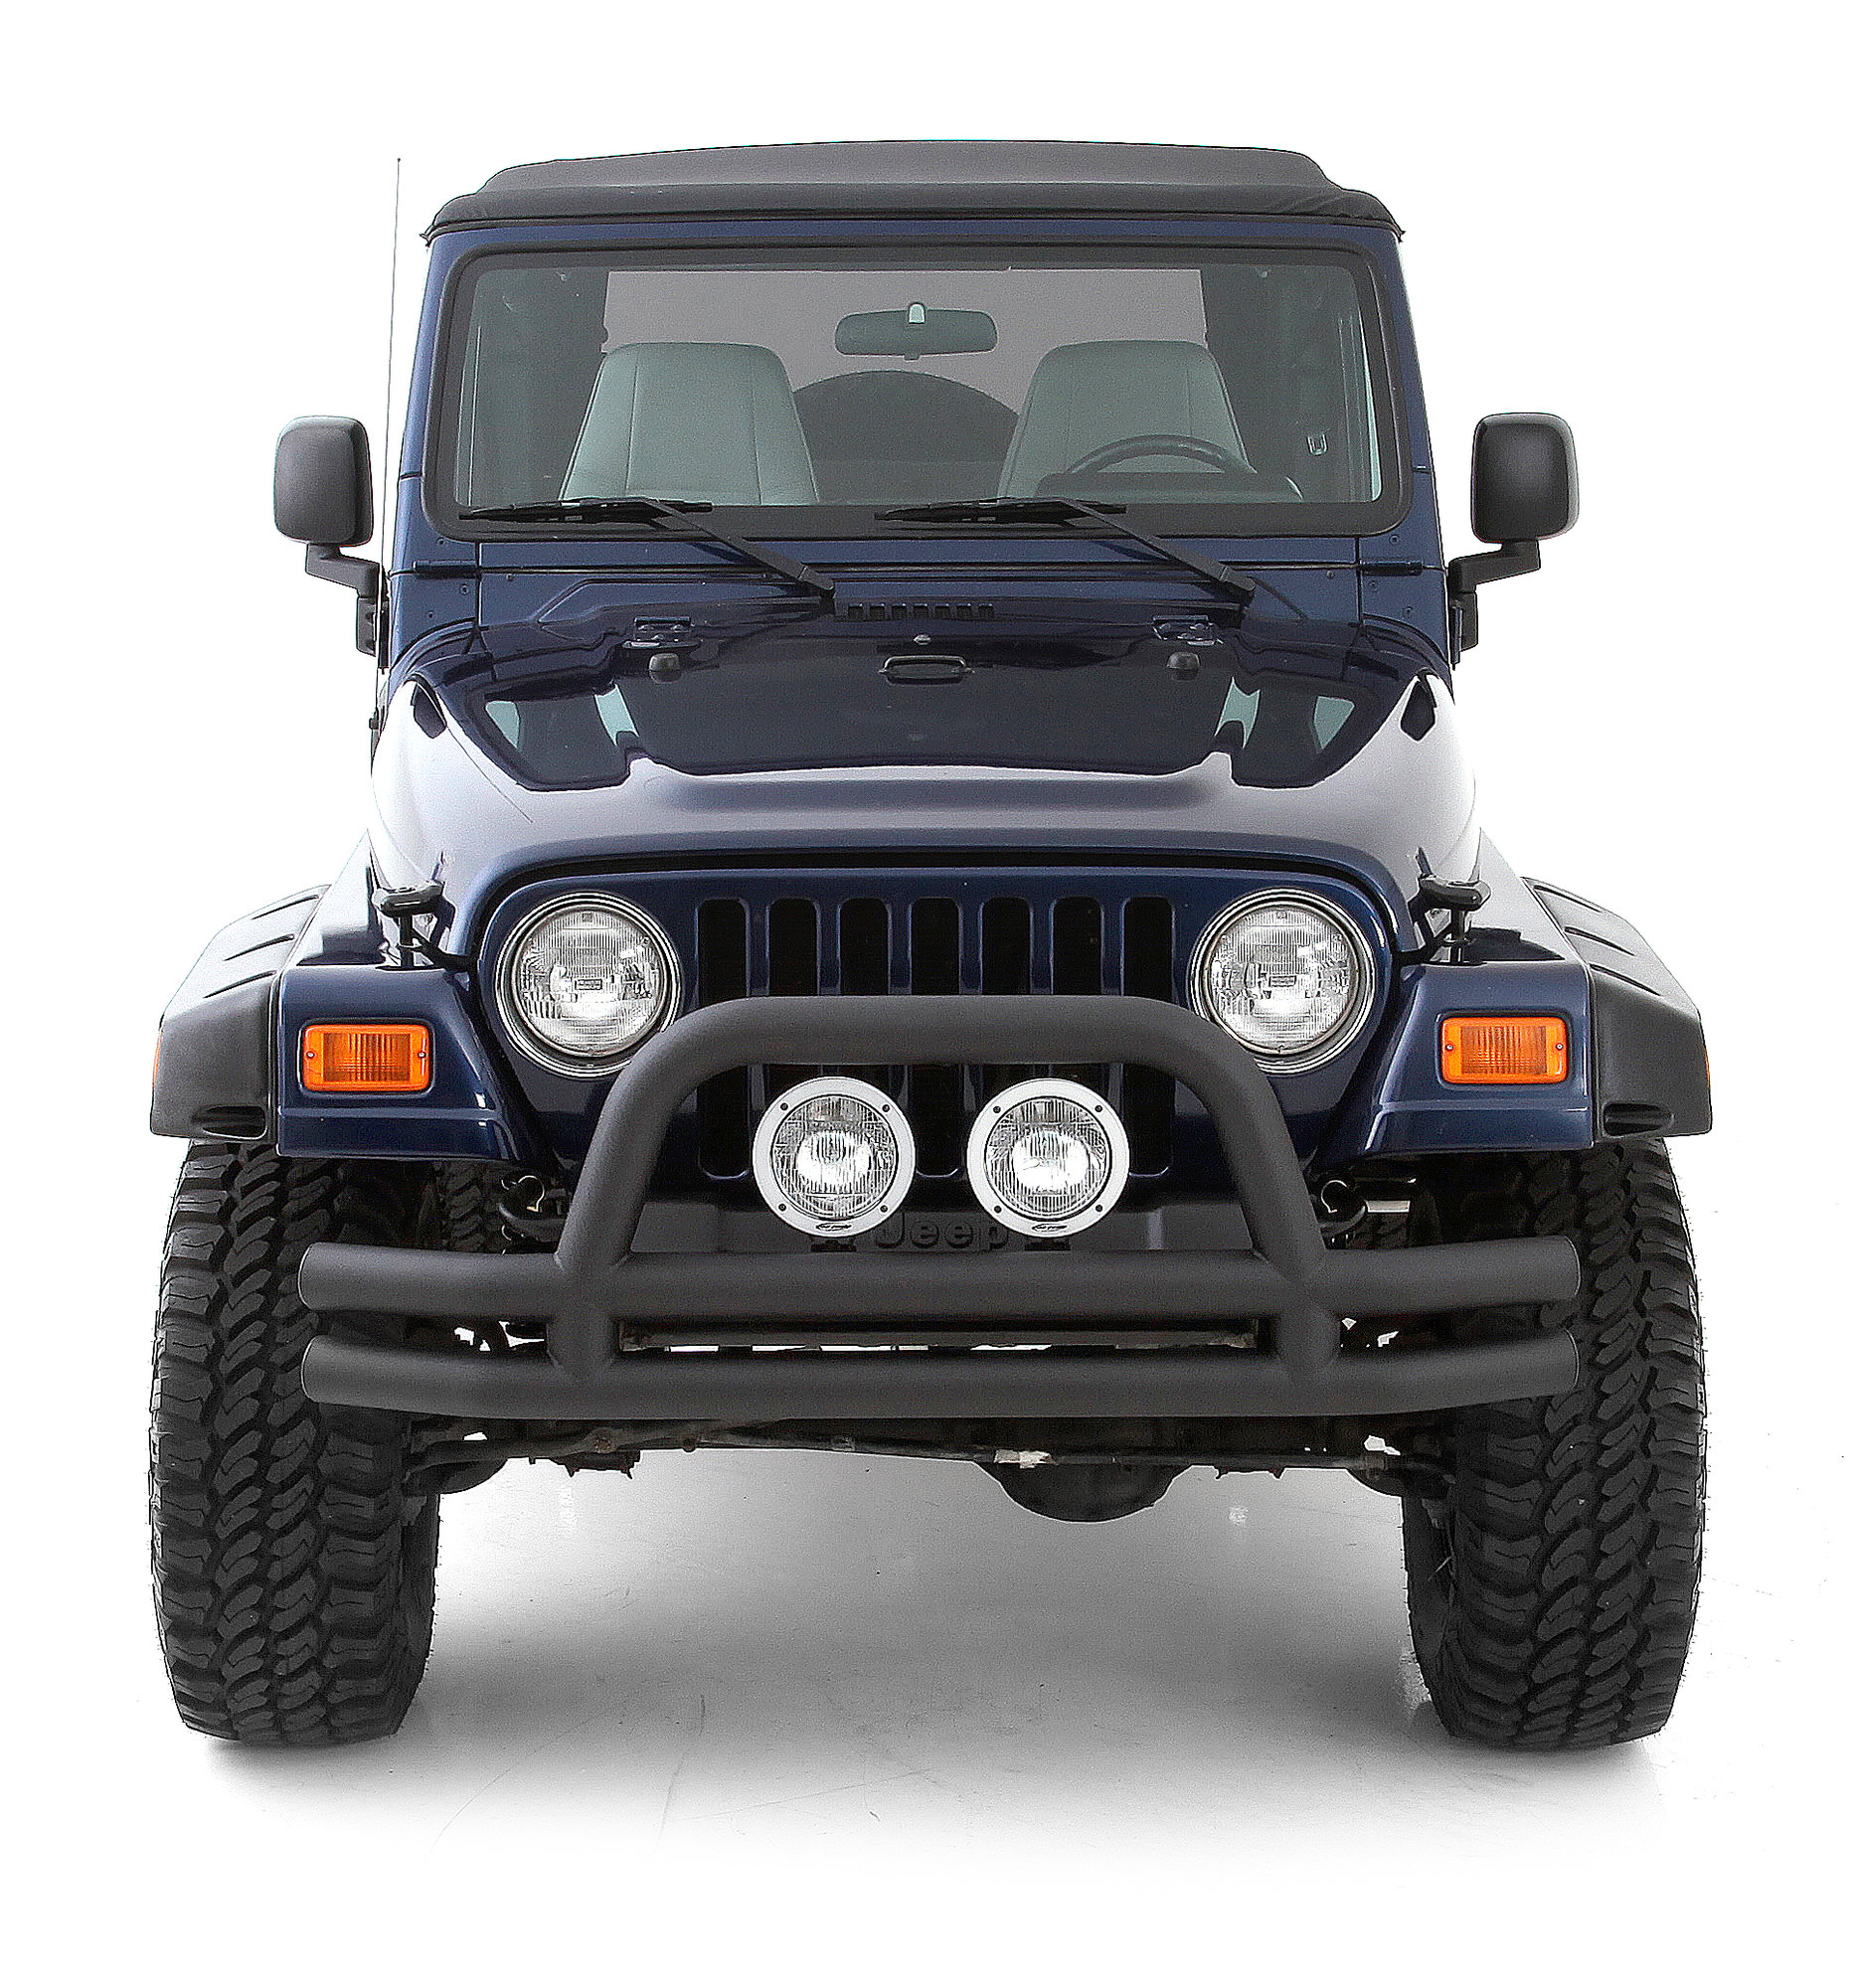 hight resolution of smittybilt front tubular bumper with hoop for 76 06 jeep cj wrangler yj tj unlimited quadratec